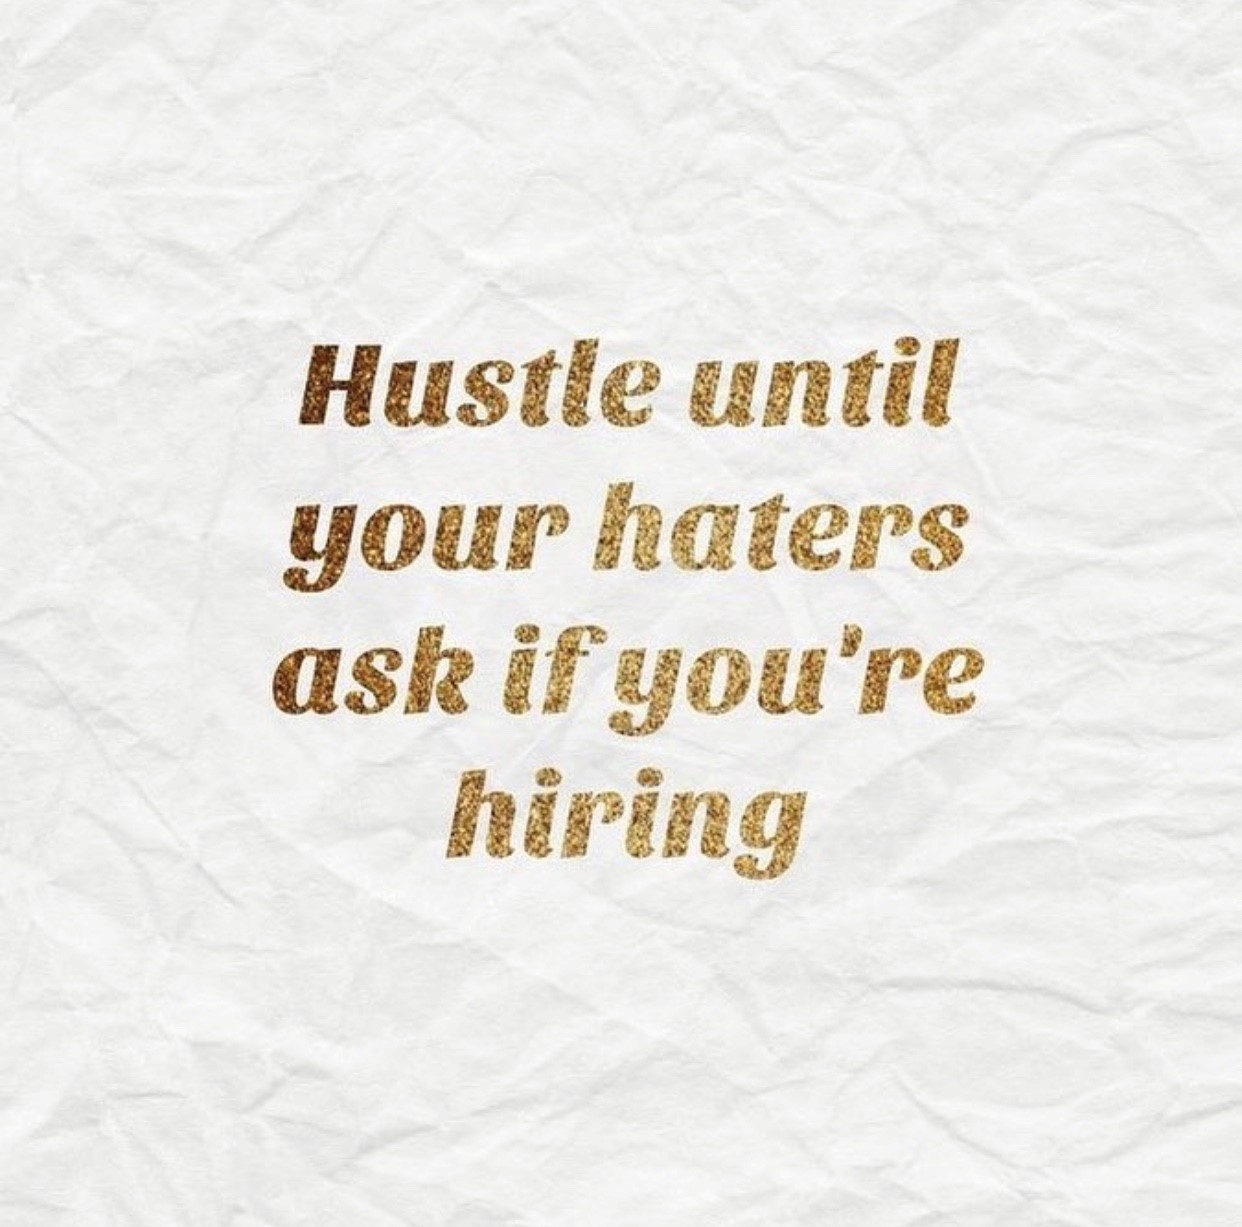 Hustle n Haters.jpg